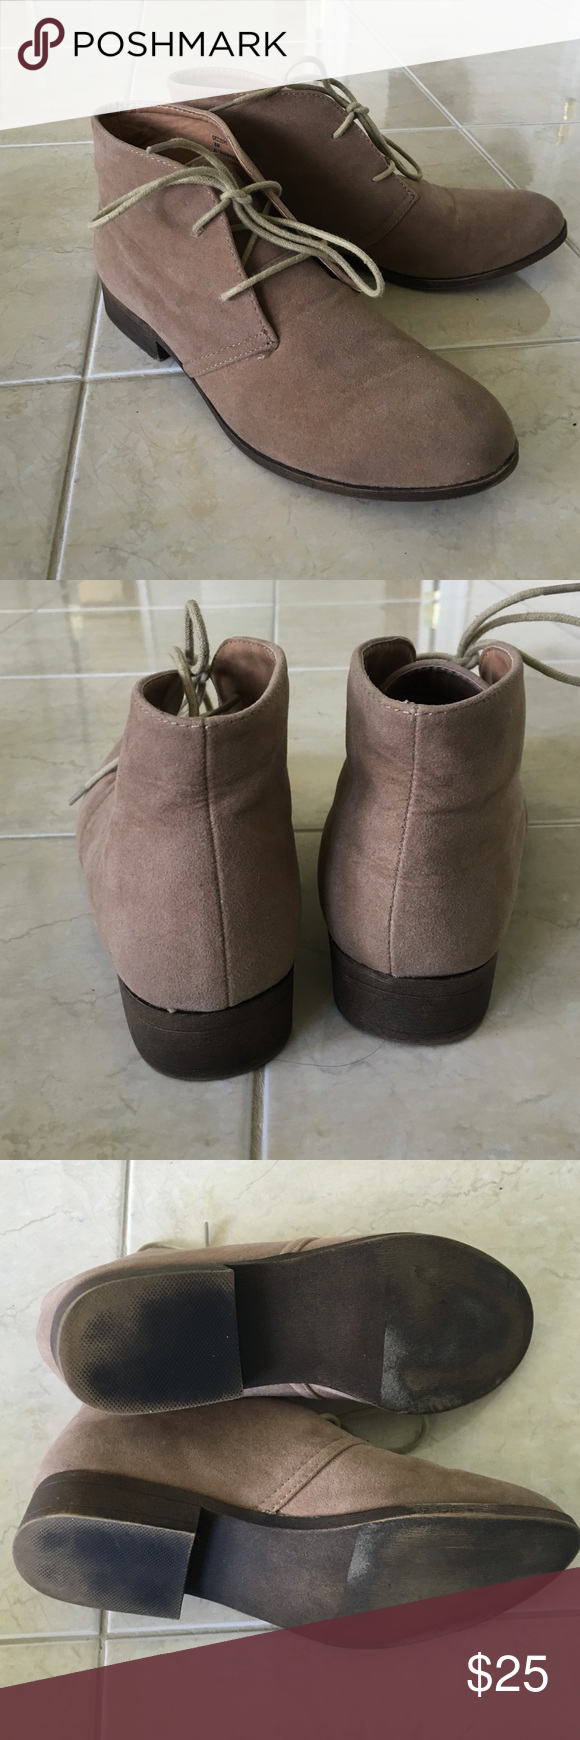 CLEAR OUT SALE Lace up booties In used condition, but still have a lot of life in them. Madden Girl Shoes